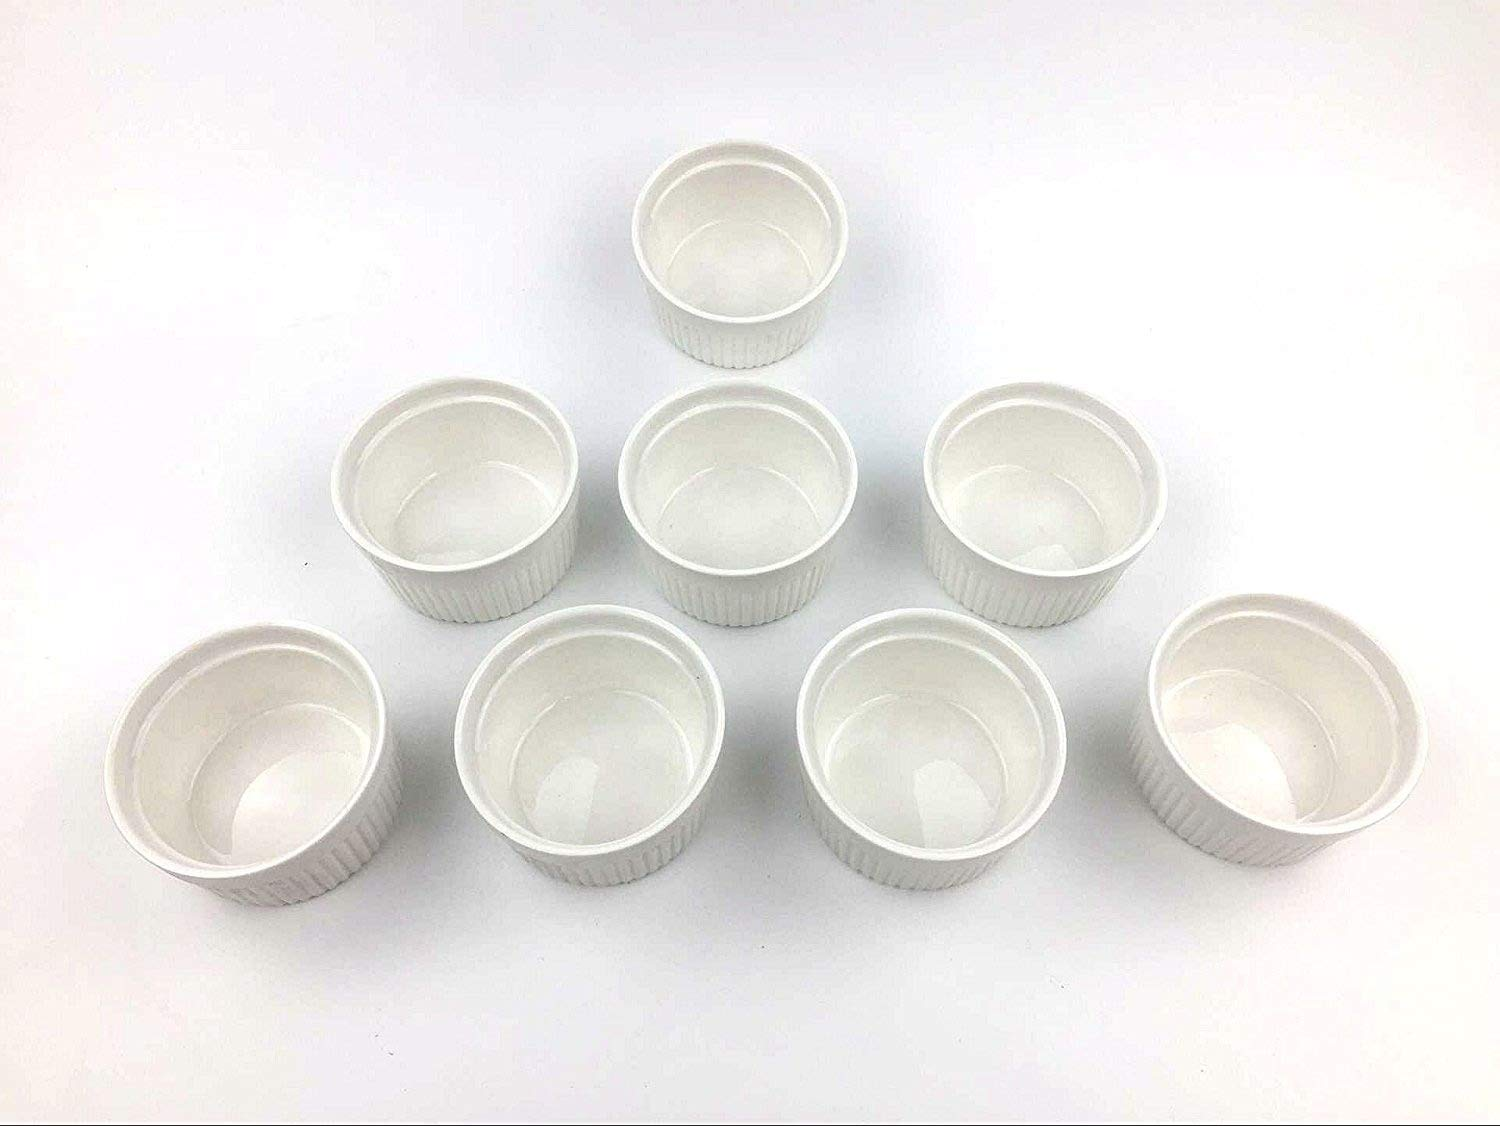 Set of 8 PCS 6 oz Round Porcelain Oven Safe Ramekin Dessert Souffle Baking Dish(3.5 INCHES) (WHITE) by Accguan